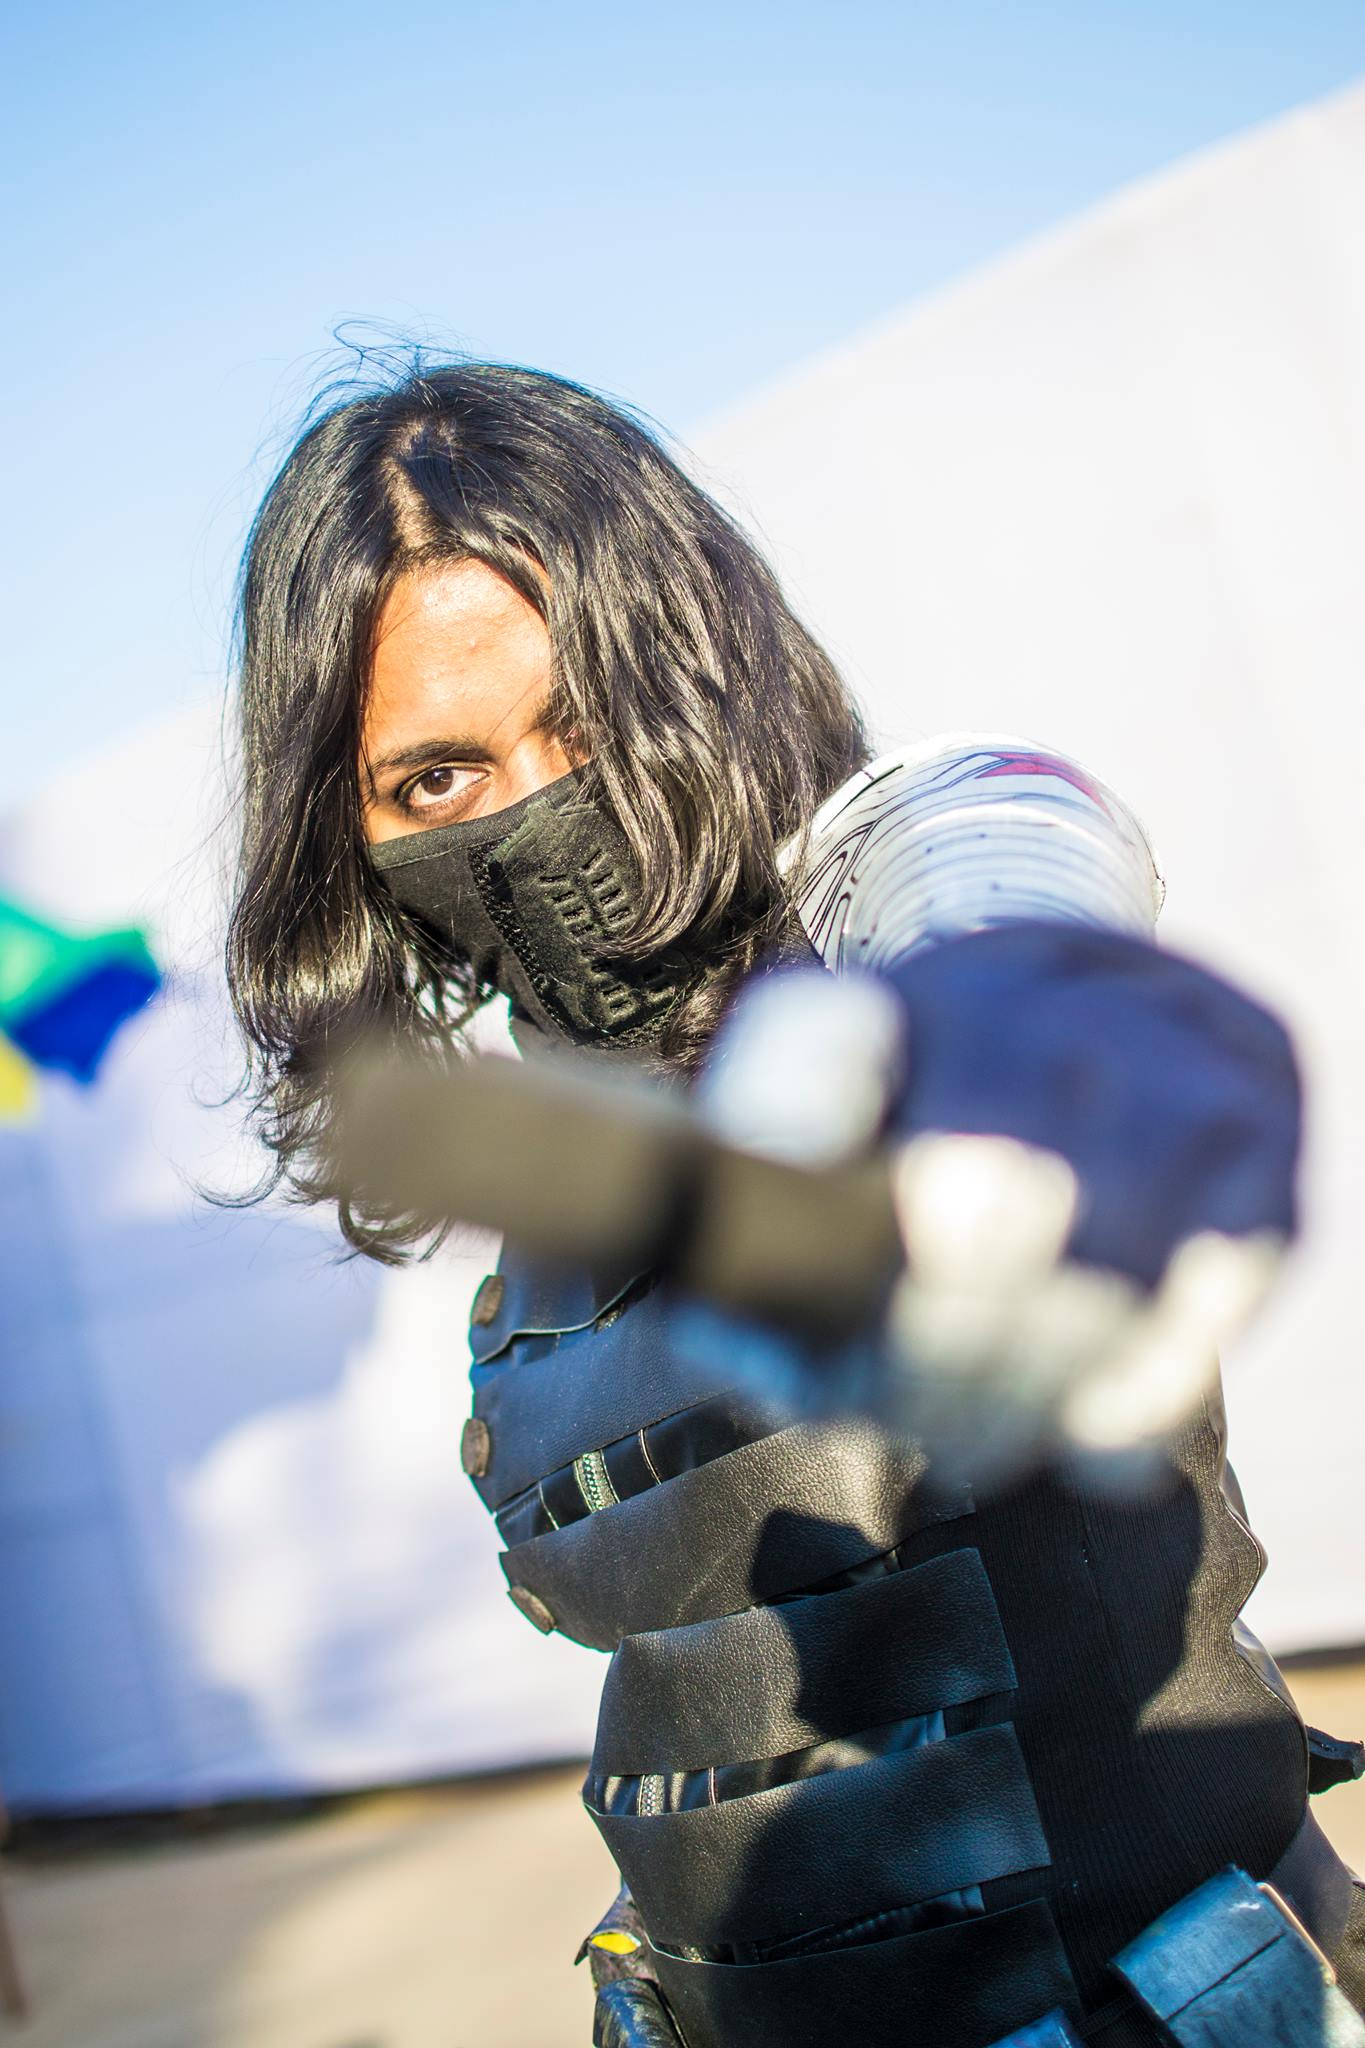 Swati  | Winter Soldier Cosplay